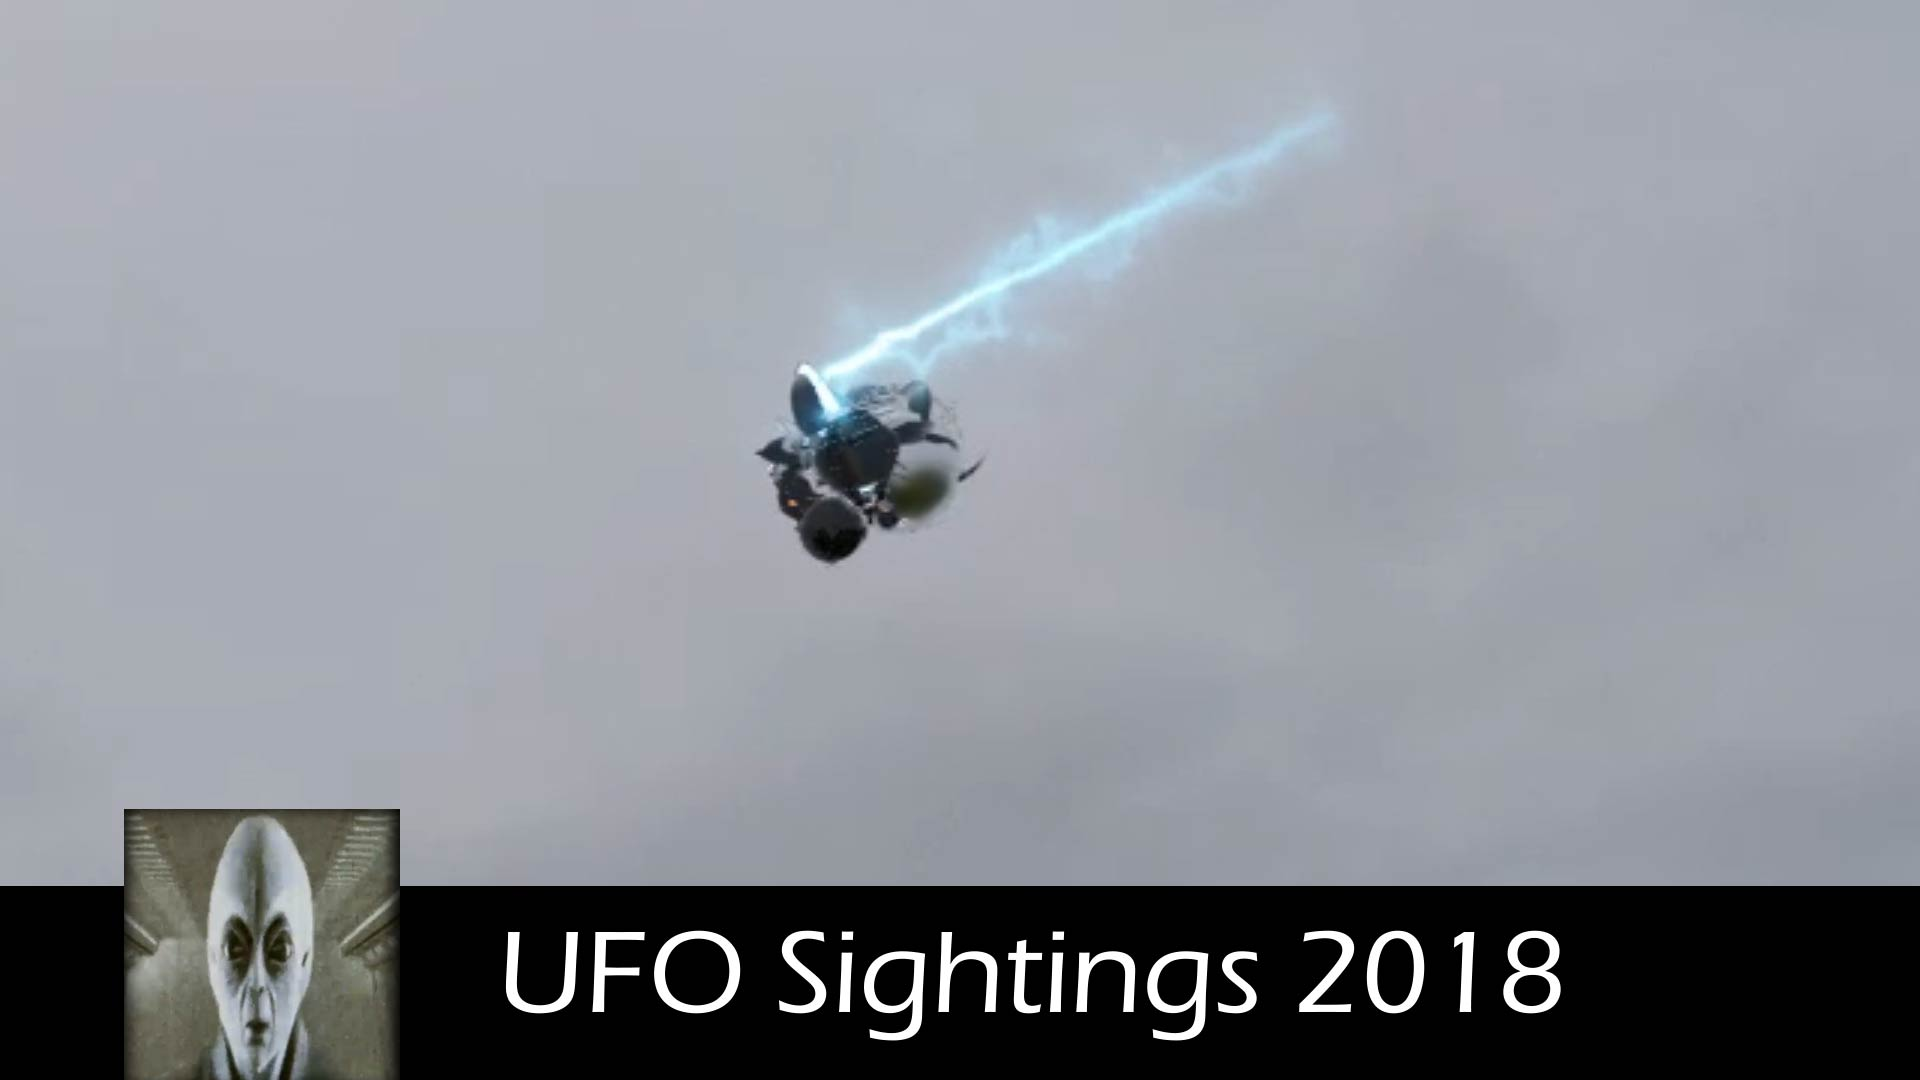 UFO Sightings 2018 Excellent Footage You Might Want To See This